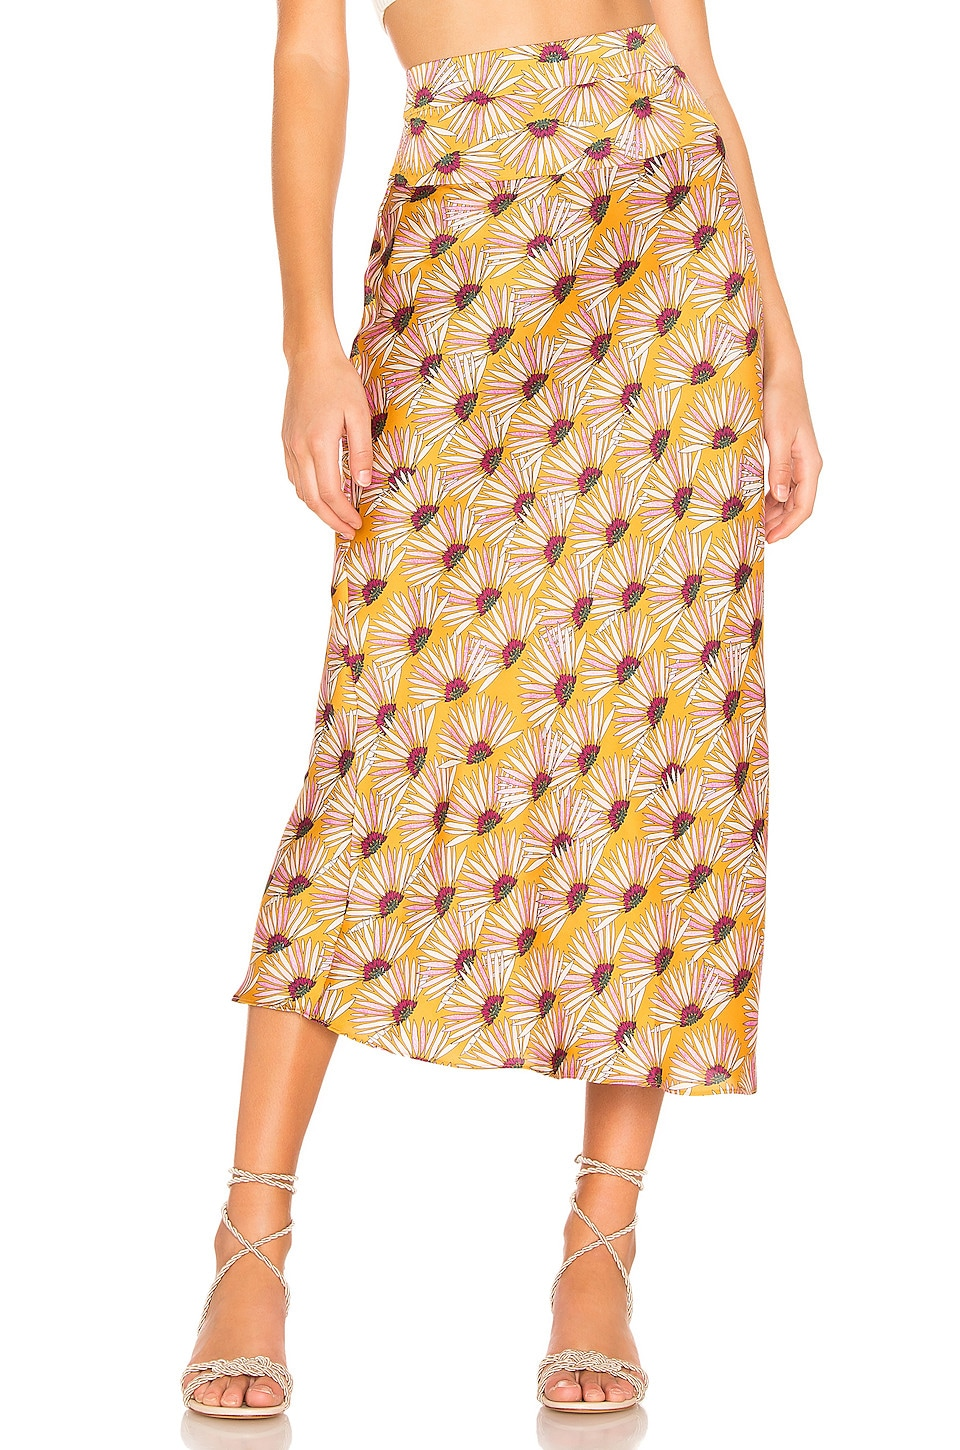 Free People Normani Printed Bias Skirt in Honey